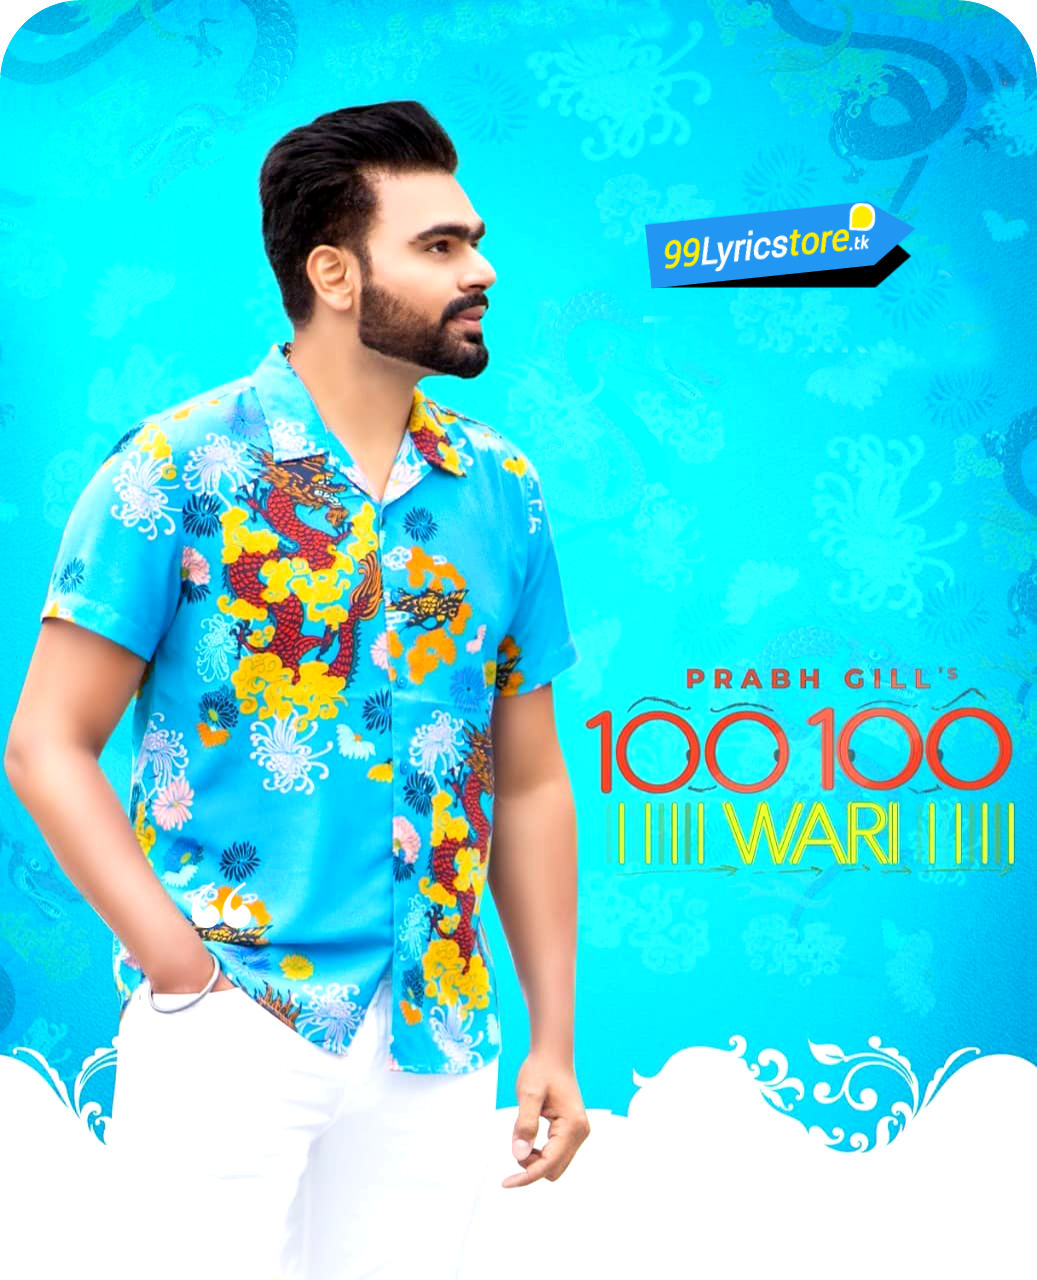 Prabh Gill Song Lyrics, Prabh Gill Punjabi Song Lyrics, Lates Punjabi Song Lyrics 2018, Latest Punjabi Song images, 100 100 Wari Punjabi Song Images, Prabhi Gill 100 100 Wari Song Lyrics 2018,